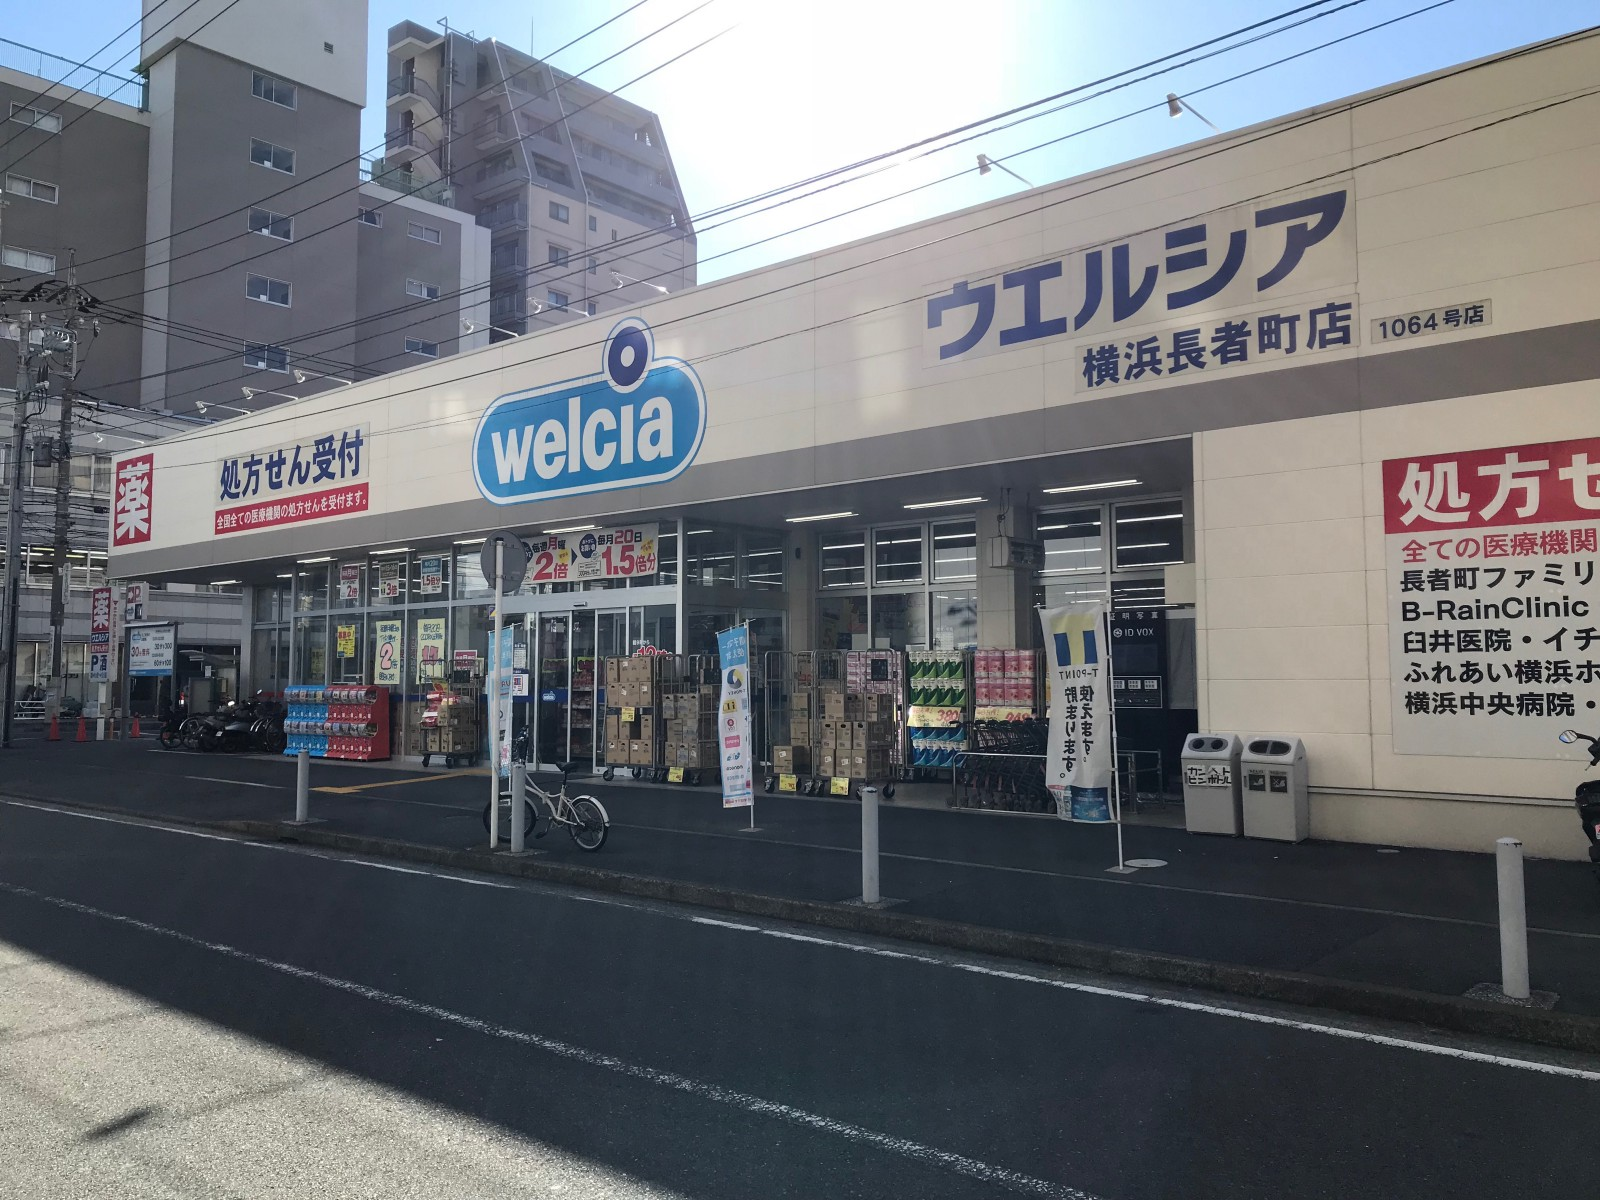 In front of welcia shop